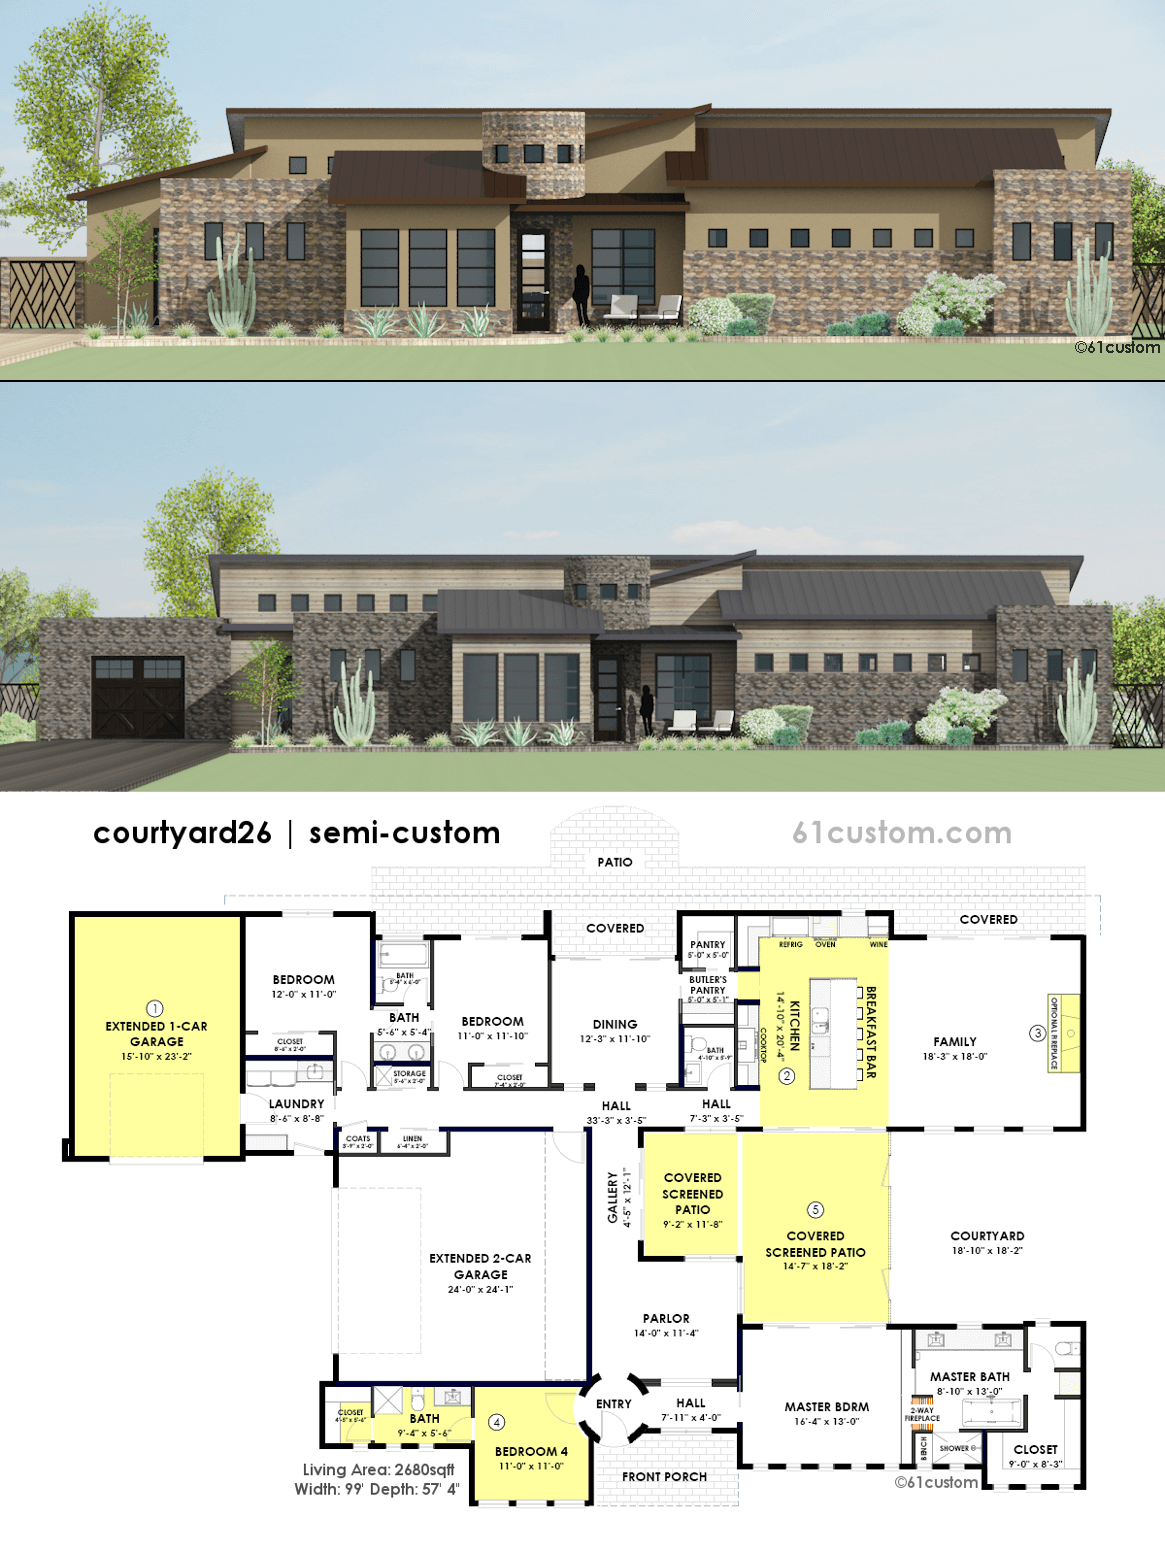 Semi custom house plans 61custom modern floor plans for Custom home design online